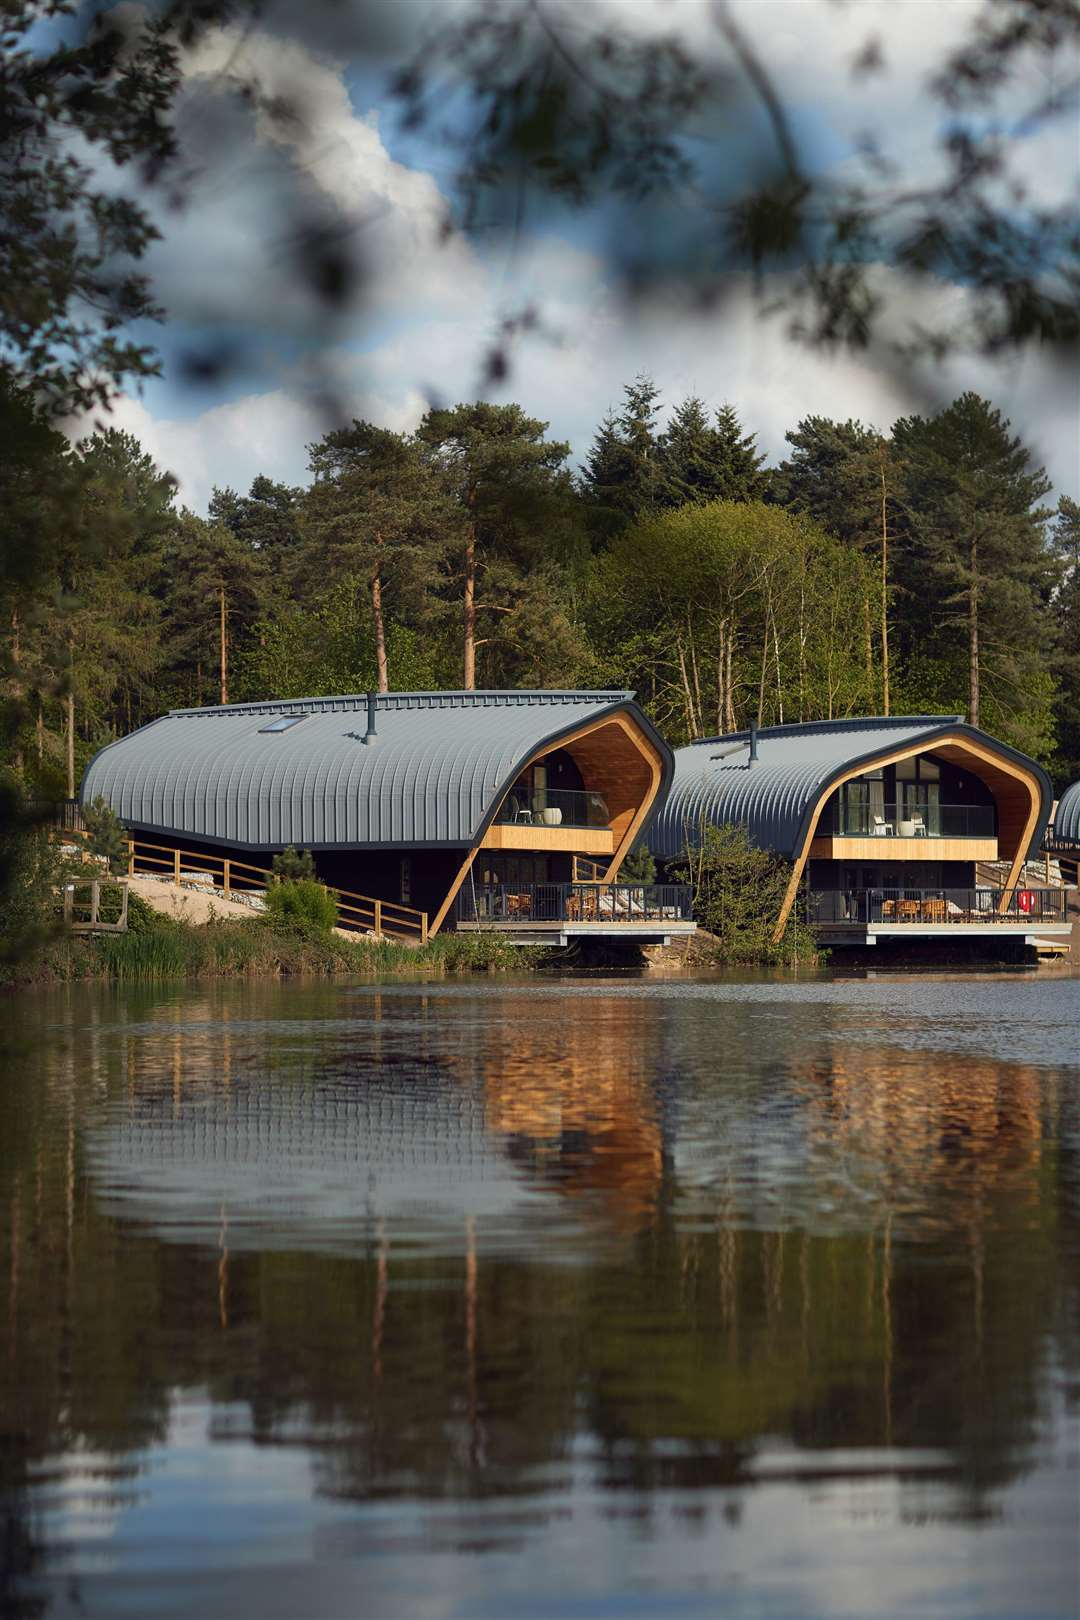 Undated Handout Photo of a Waterside Lodge at Center Parcs. See PA Feature TOPICAL Travel Center Parcs. Picture credit should read: Center Parcs/PA. WARNING: This picture must only be used to accompany PA Feature TOPICAL Travel Center Parcs. (1971400)